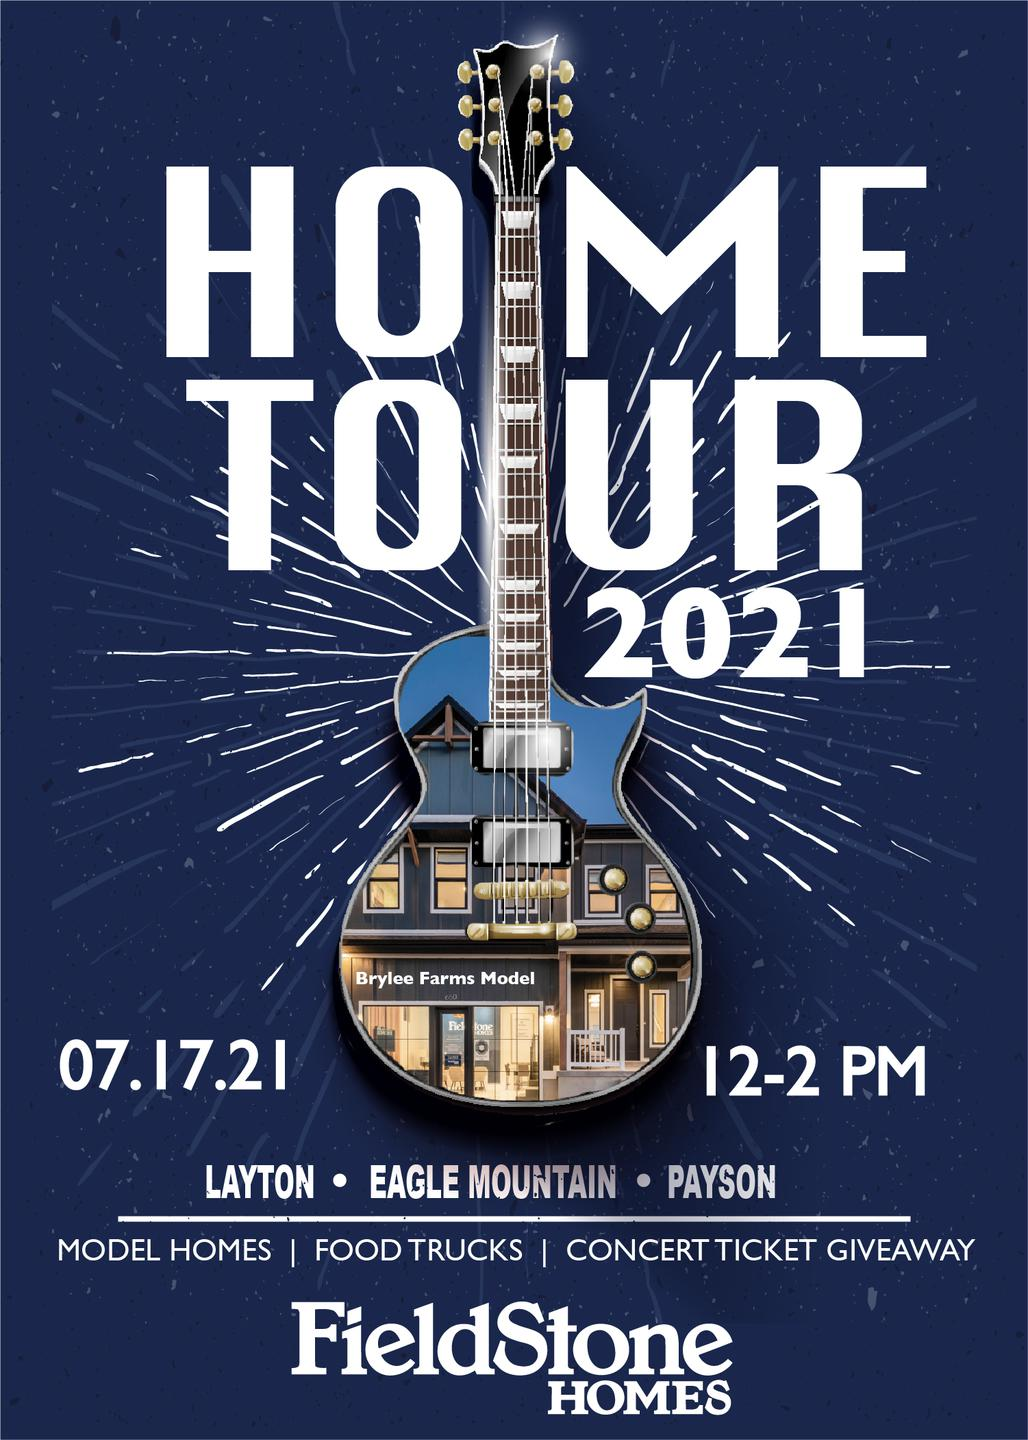 Kick Off Your New Home Journey at the Home Tour 2021 by Fieldstone Homes!